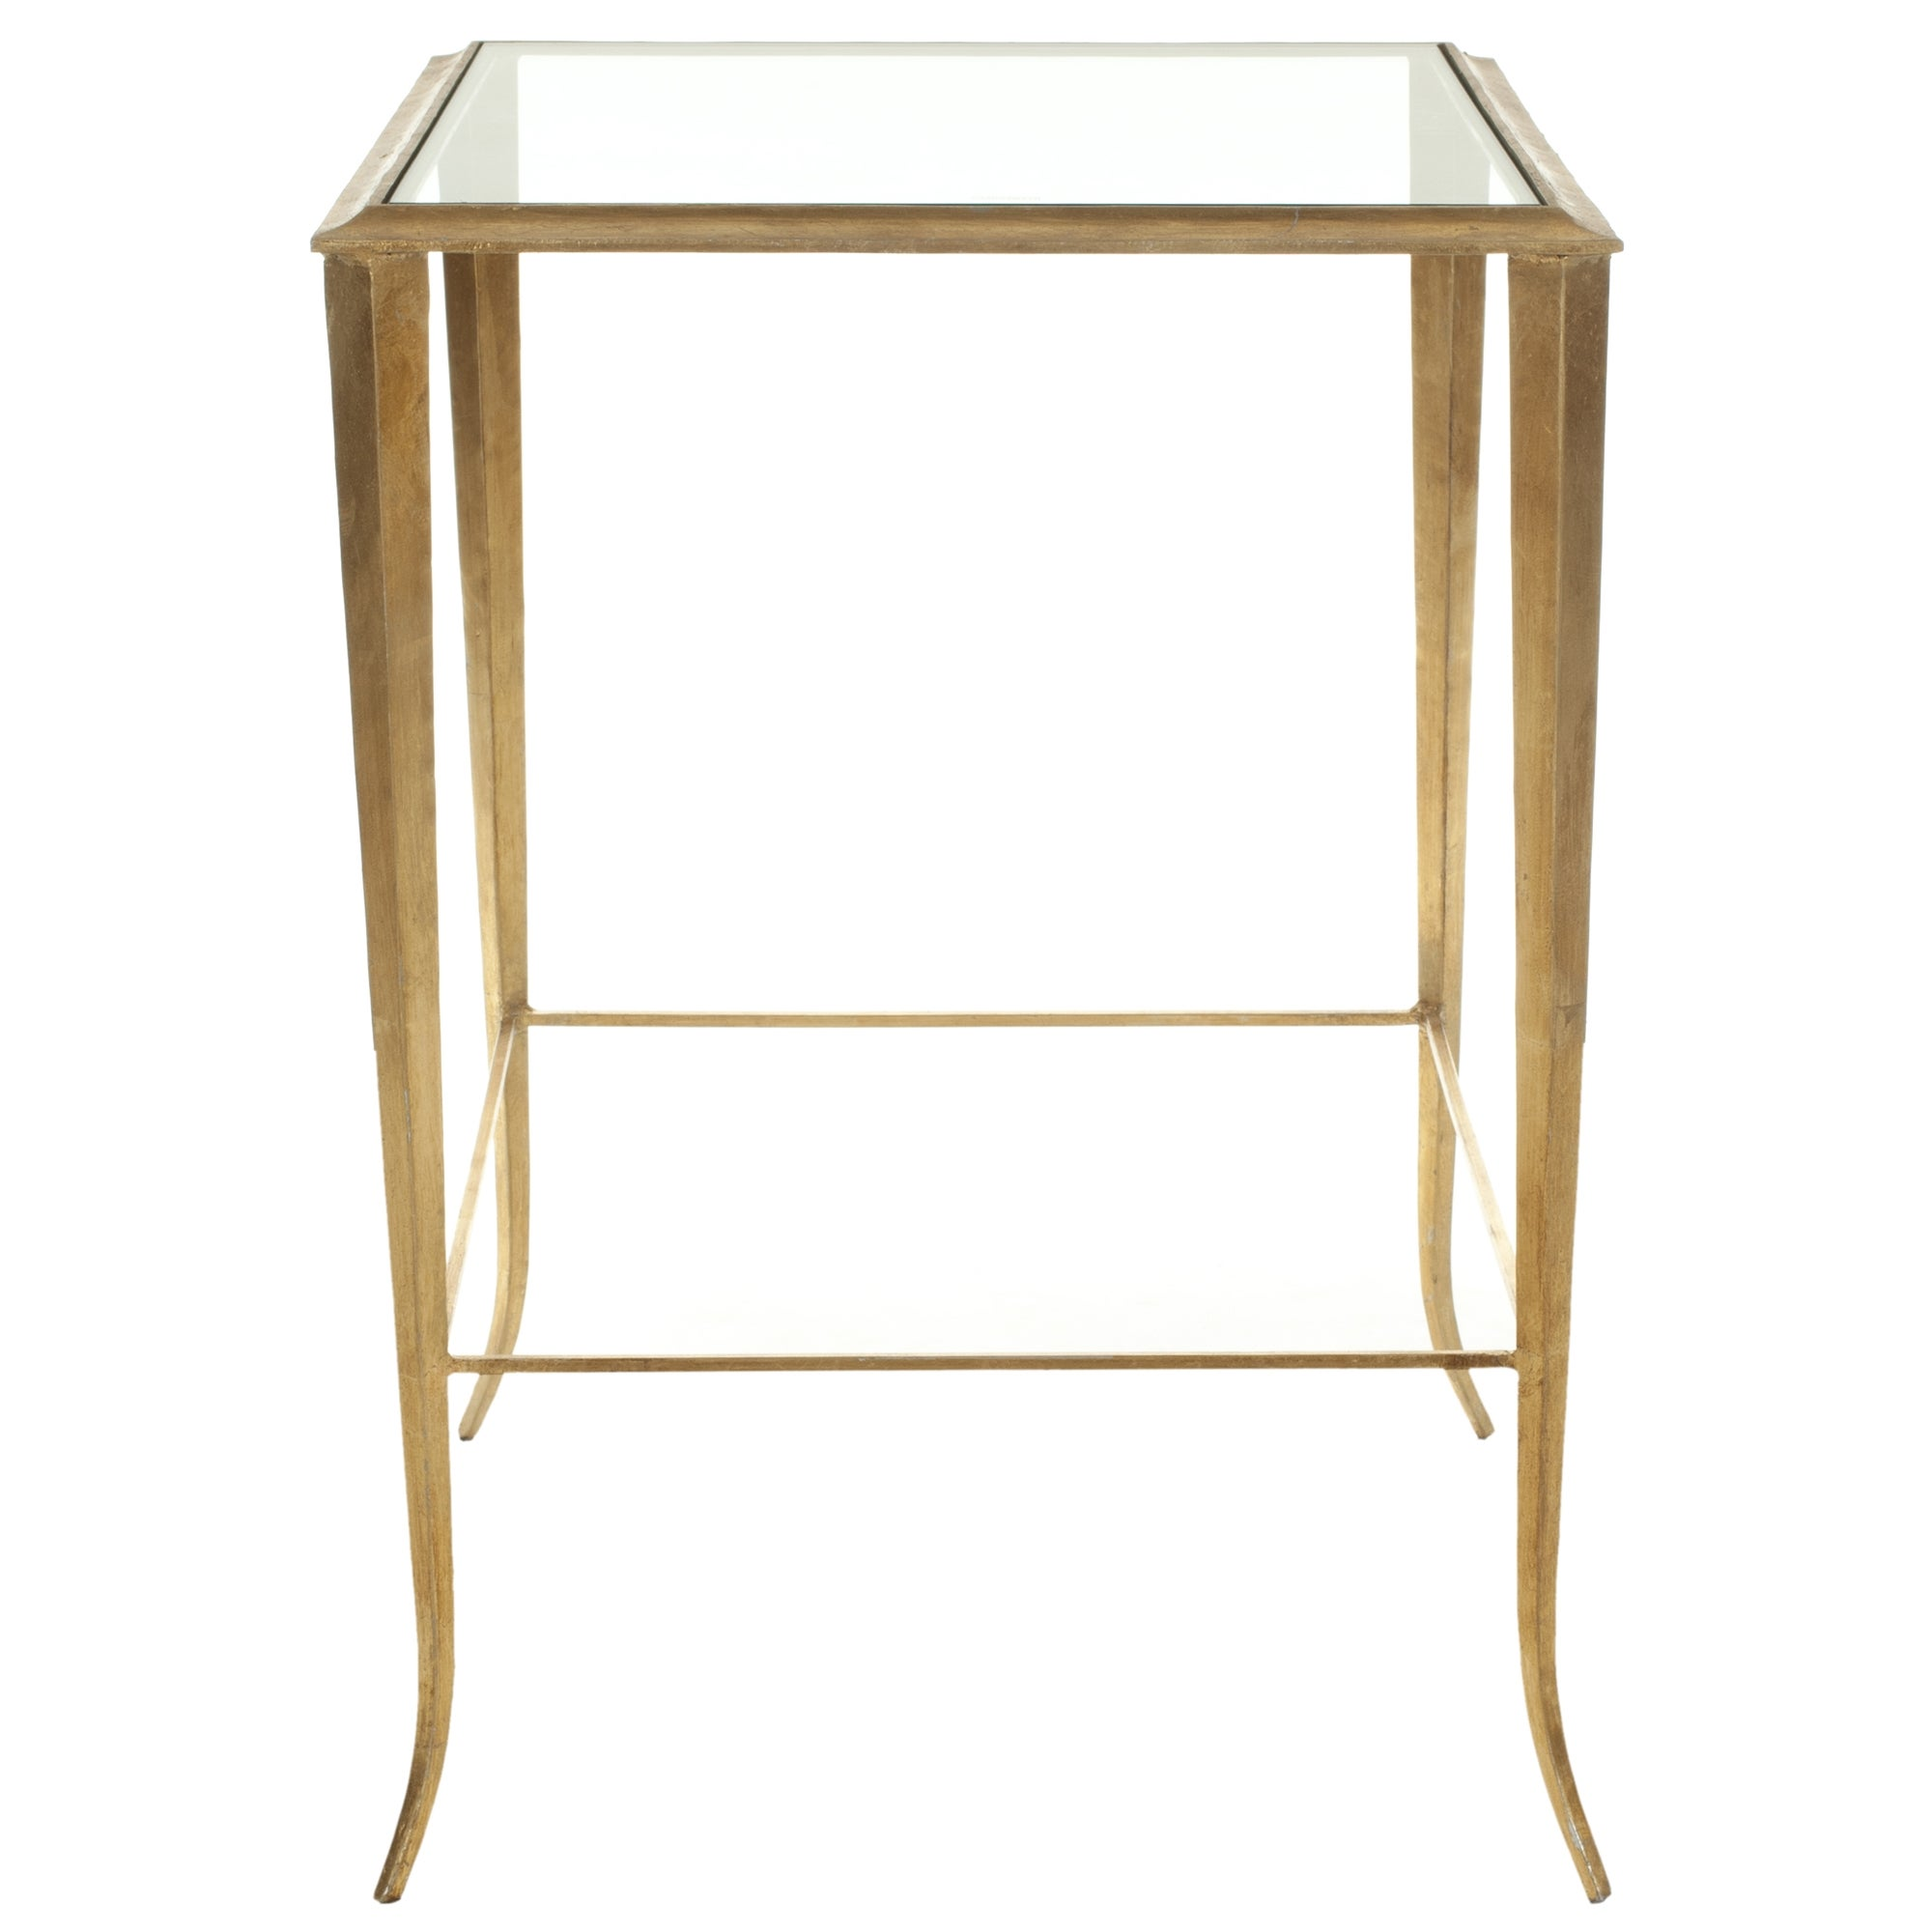 Shop Safavieh Hidden Treasures Glass Top Brass Accent Table Free